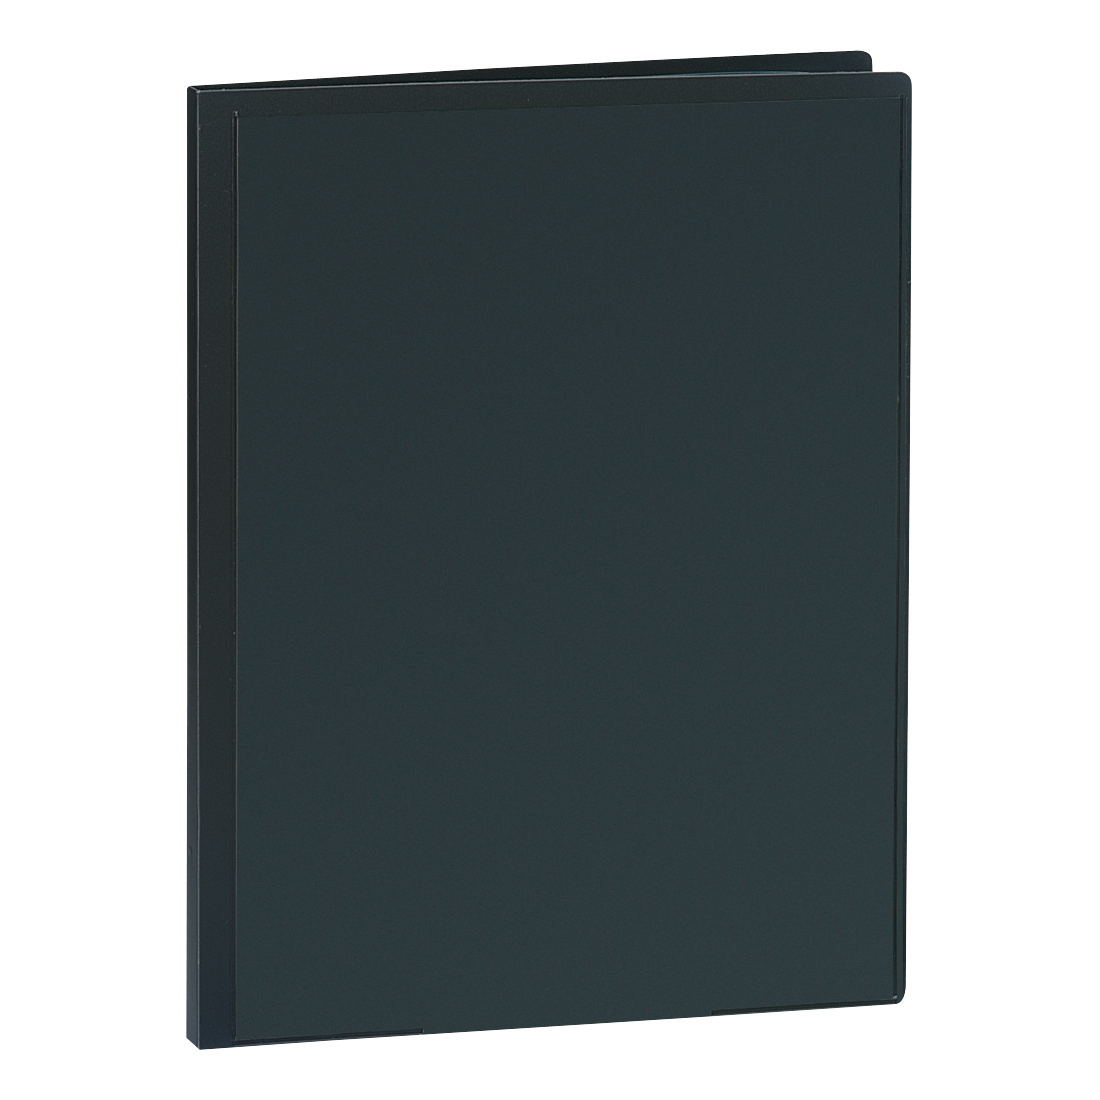 Display Books 5 Star Office Display Book Personalisable Cover Polypropylene 30 Pockets A4 Black